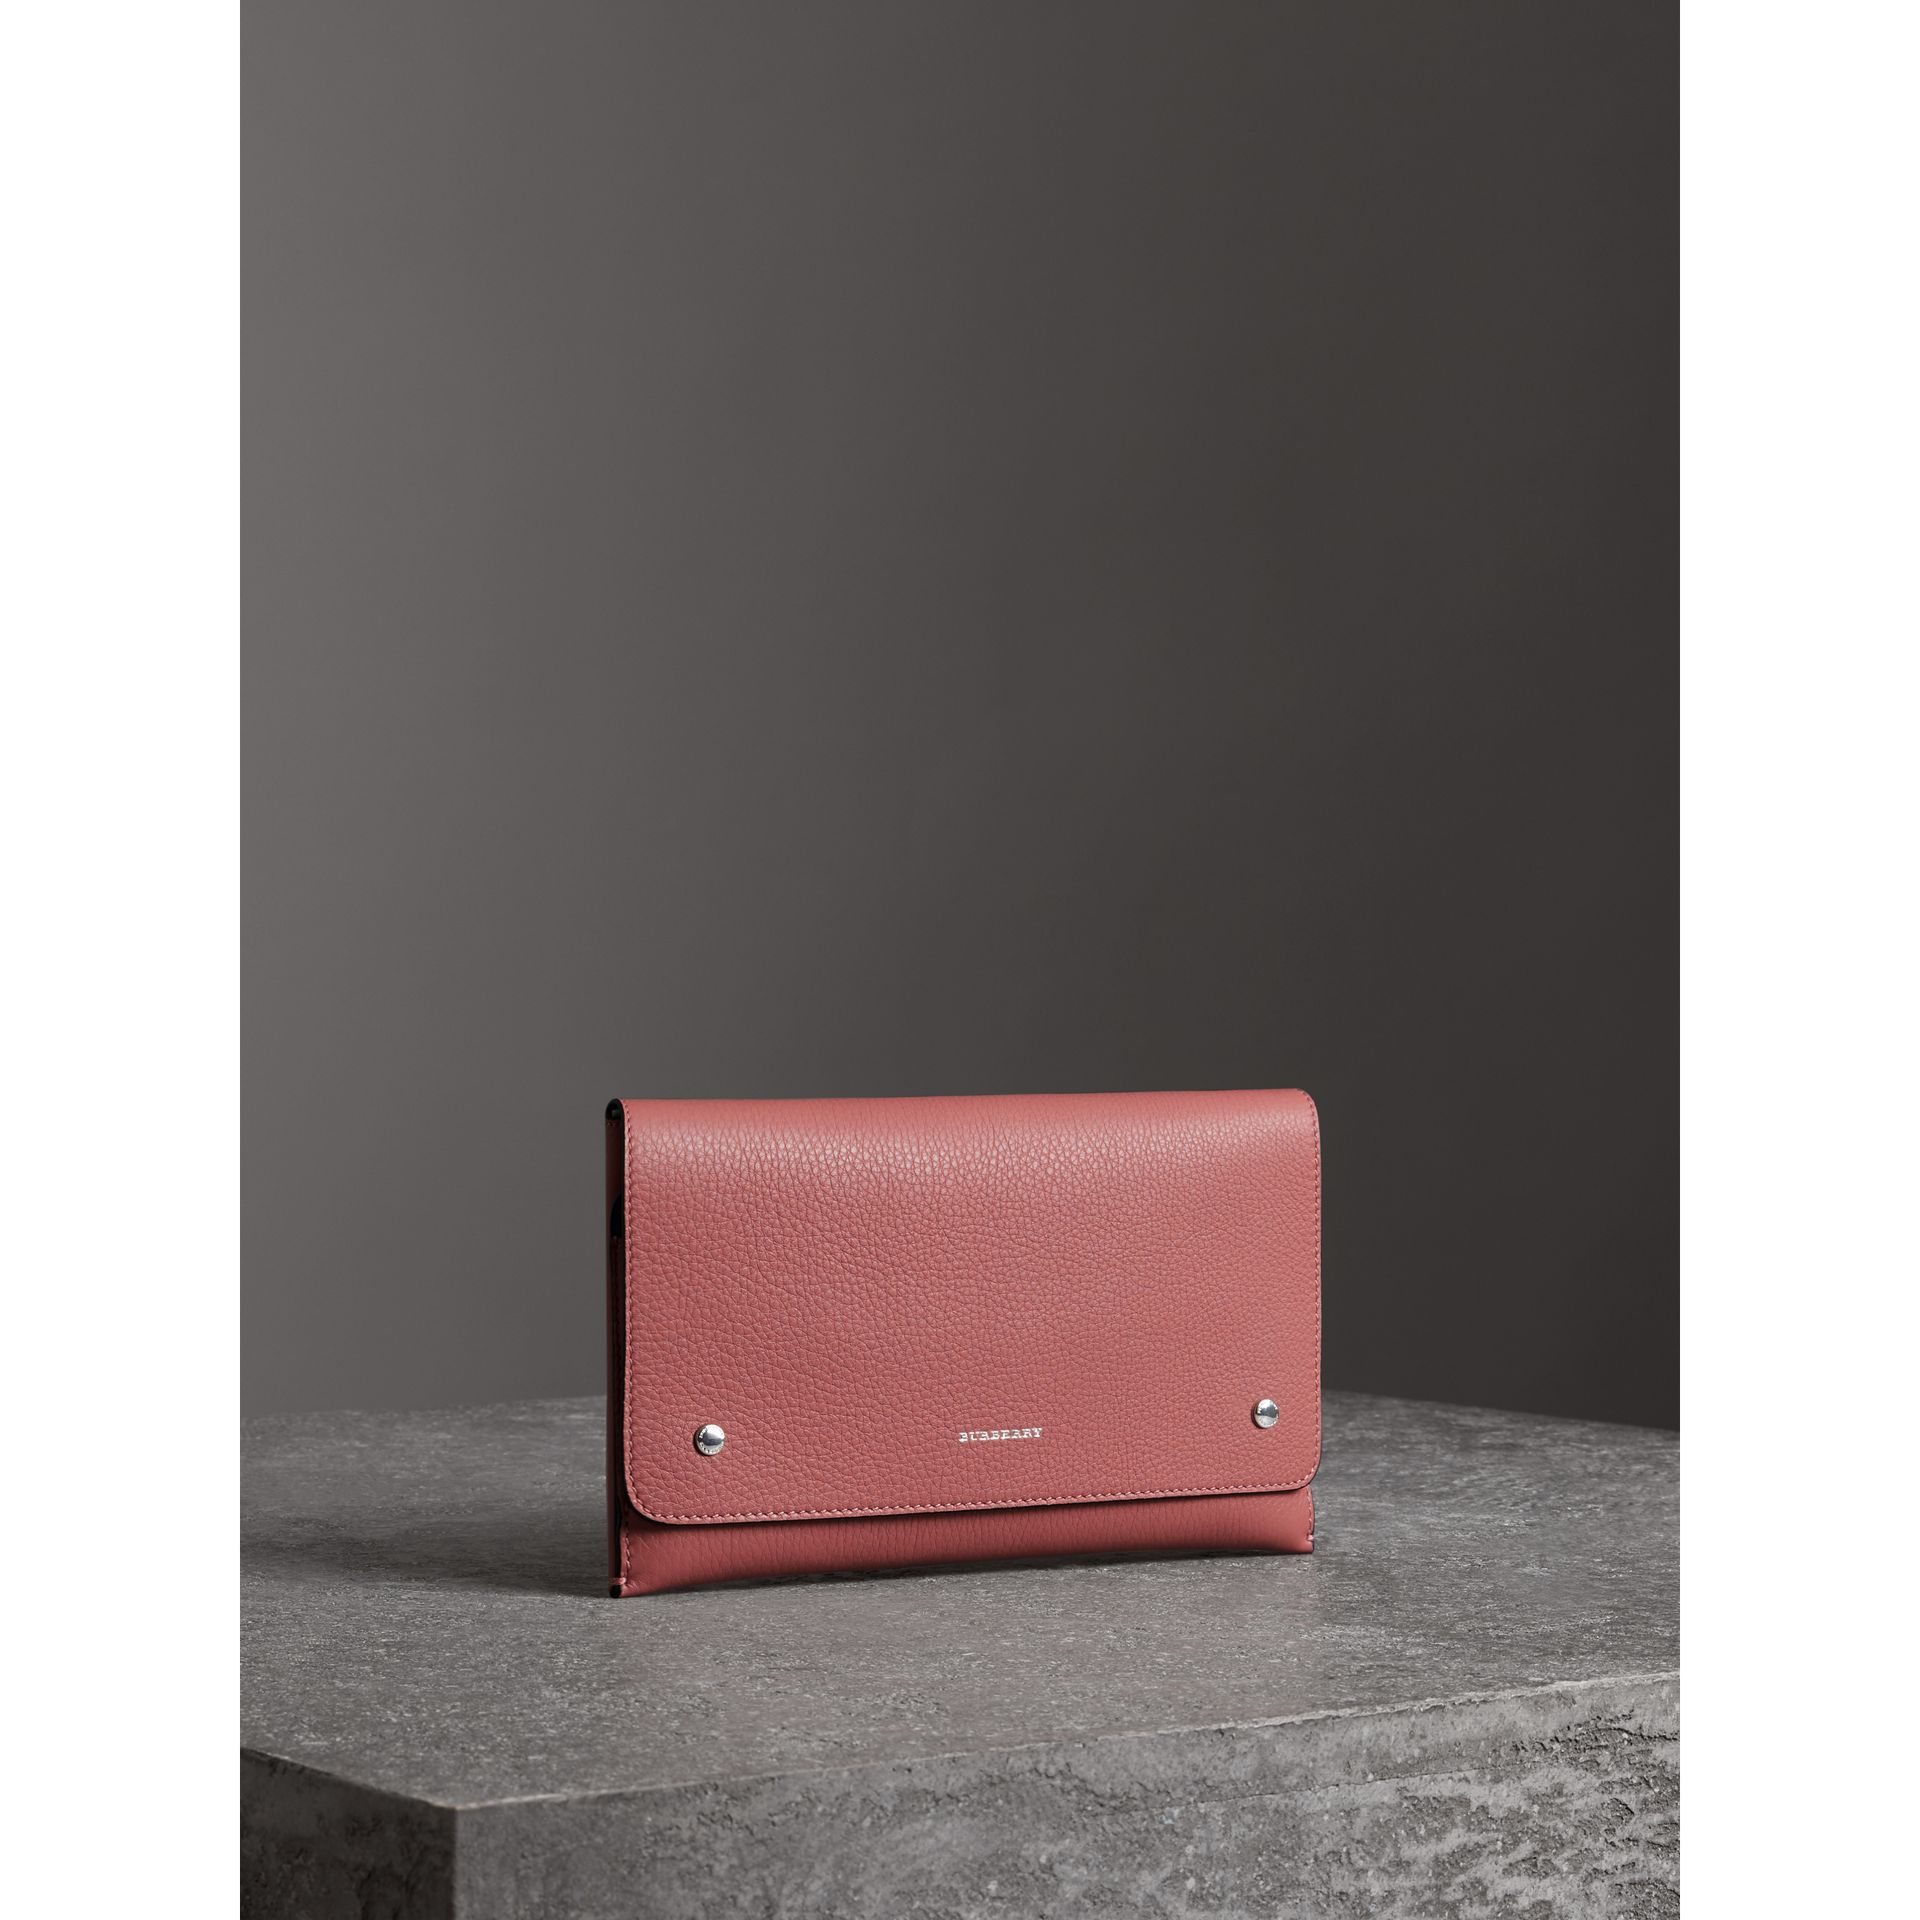 Two-tone Leather Wristlet Clutch in Dusty Rose - Women | Burberry Singapore - gallery image 4